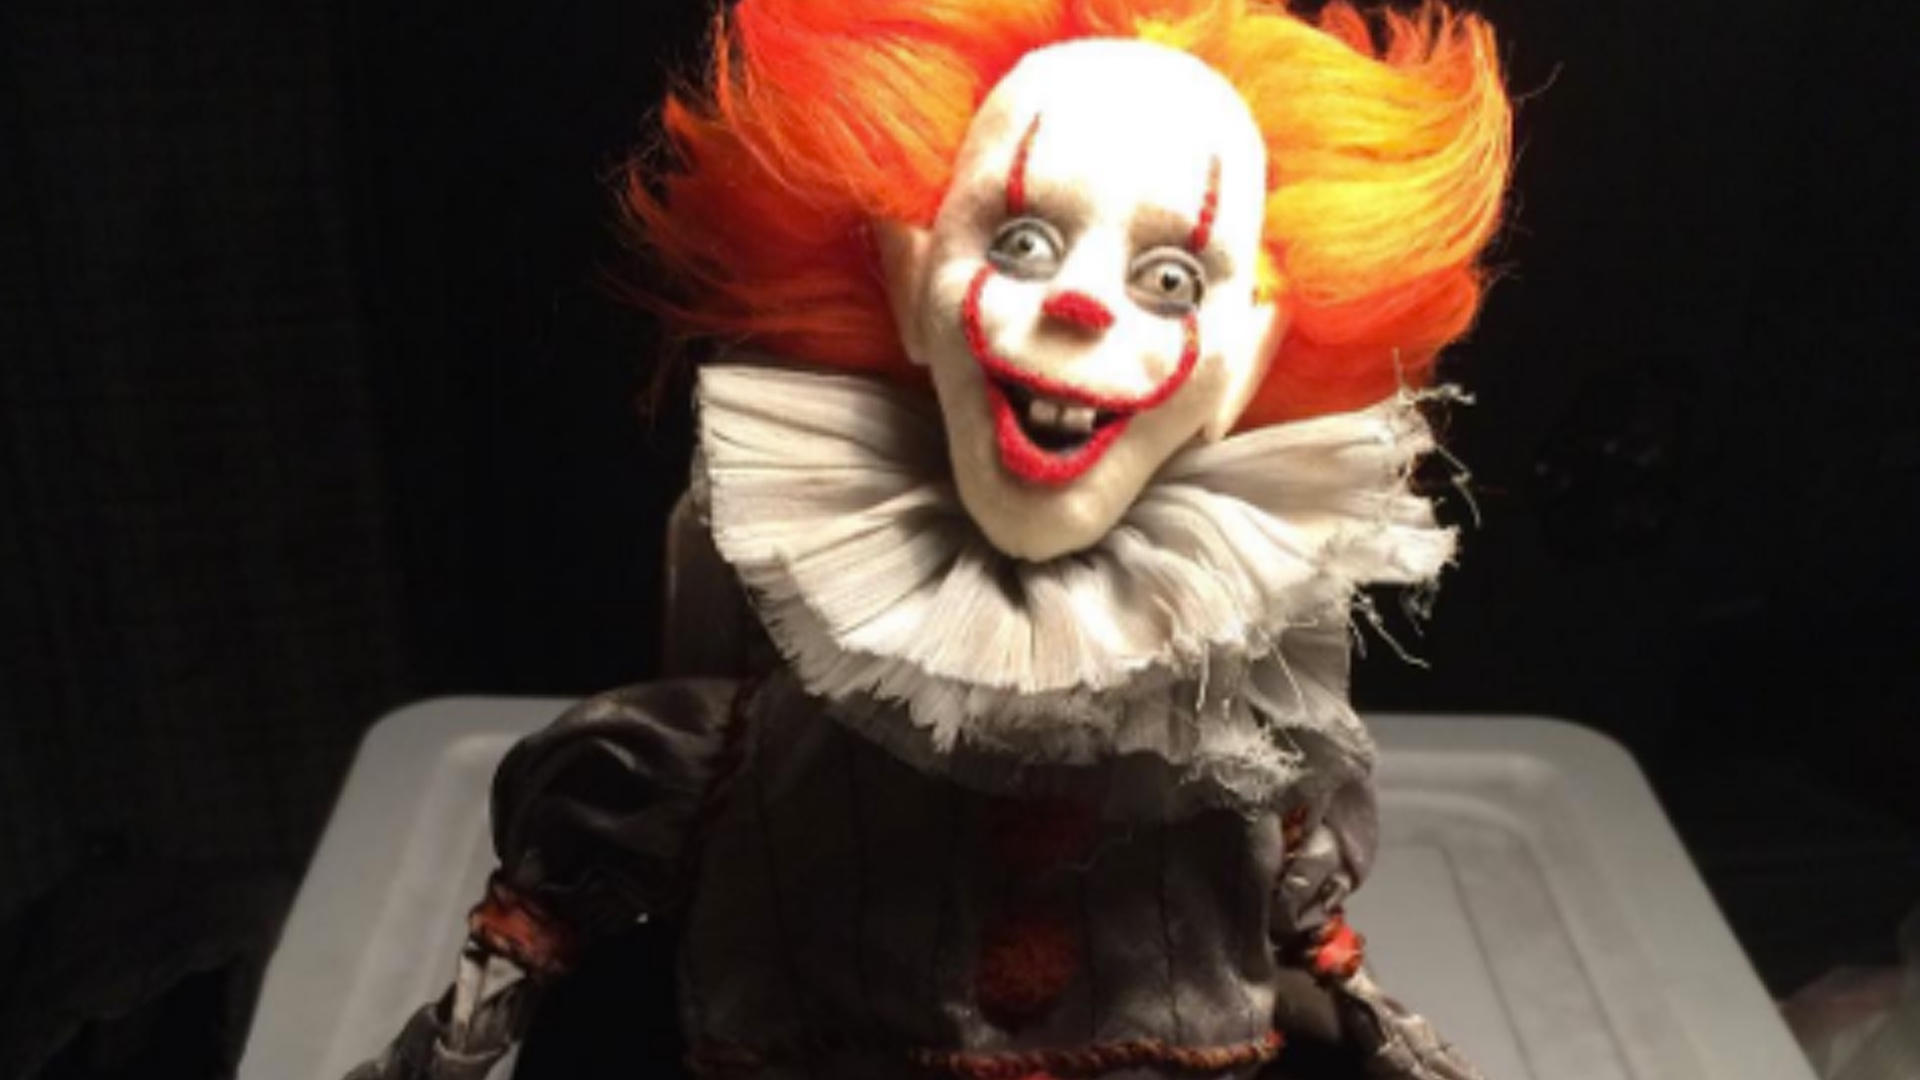 Creepy-Ass Pennywise the Clown Jack-in-the-Box Revealed as IT  sc 1 st  GeekTyrant & This Pennywise The Clown Halloween Animatronic Prop is What ...